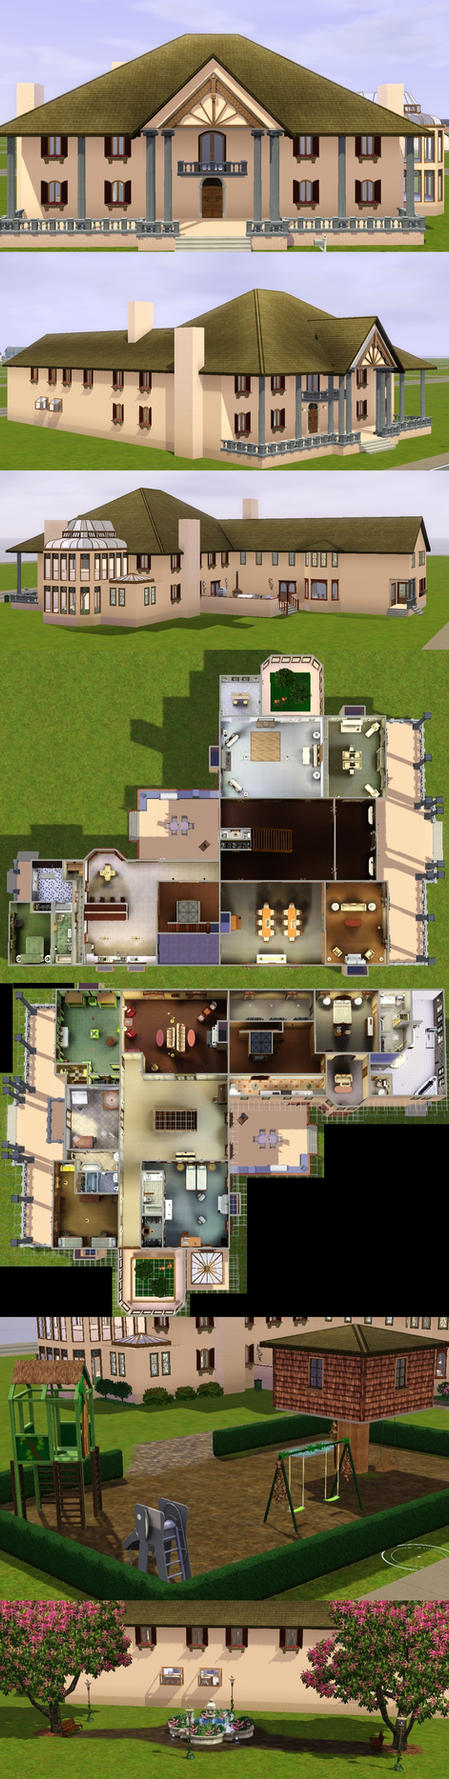 Sims 3 Based on Thistle Hill by PrlUnicorn